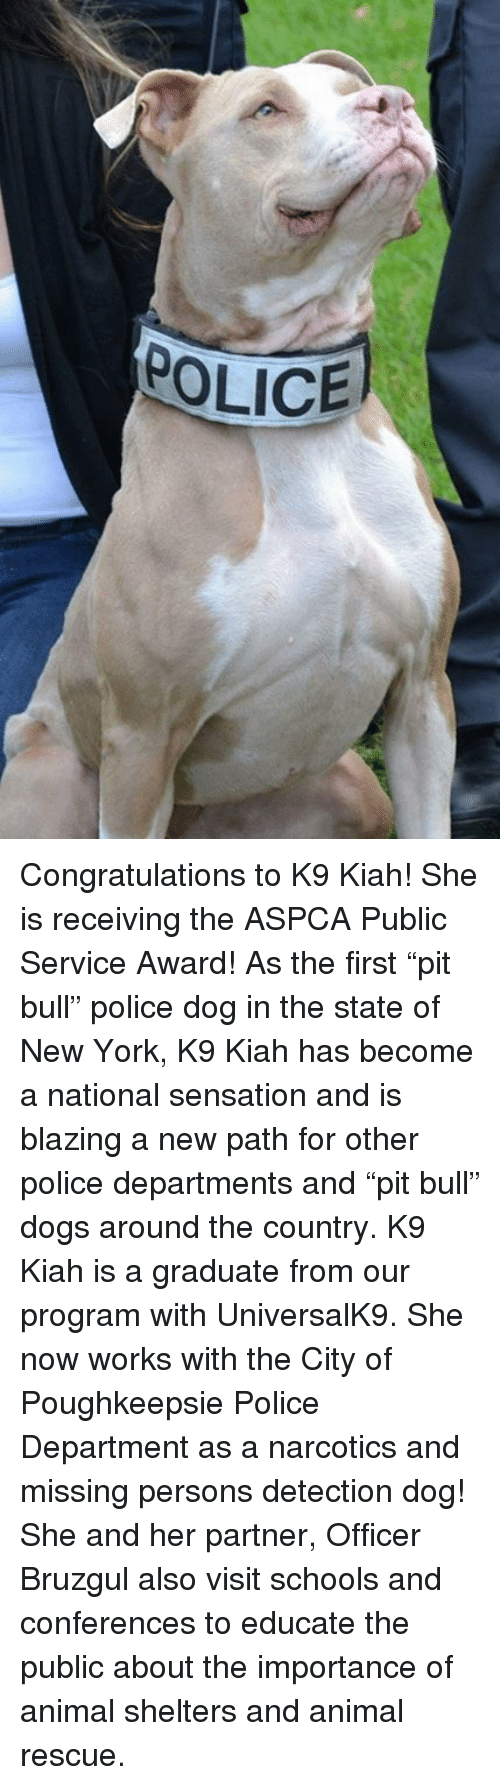 "Missing Person: POLICE Congratulations to K9 Kiah! She is receiving the ASPCA Public Service Award! As the first ""pit bull"" police dog in the state of New York, K9 Kiah has become a national sensation and is blazing a new path for other police departments and ""pit bull"" dogs around the country.   K9 Kiah is a graduate from our program with UniversalK9. She now works with the City of Poughkeepsie Police Department as a narcotics and missing persons detection dog! She and her partner, Officer Bruzgul also visit schools and conferences to educate the public about the importance of animal shelters and animal rescue."